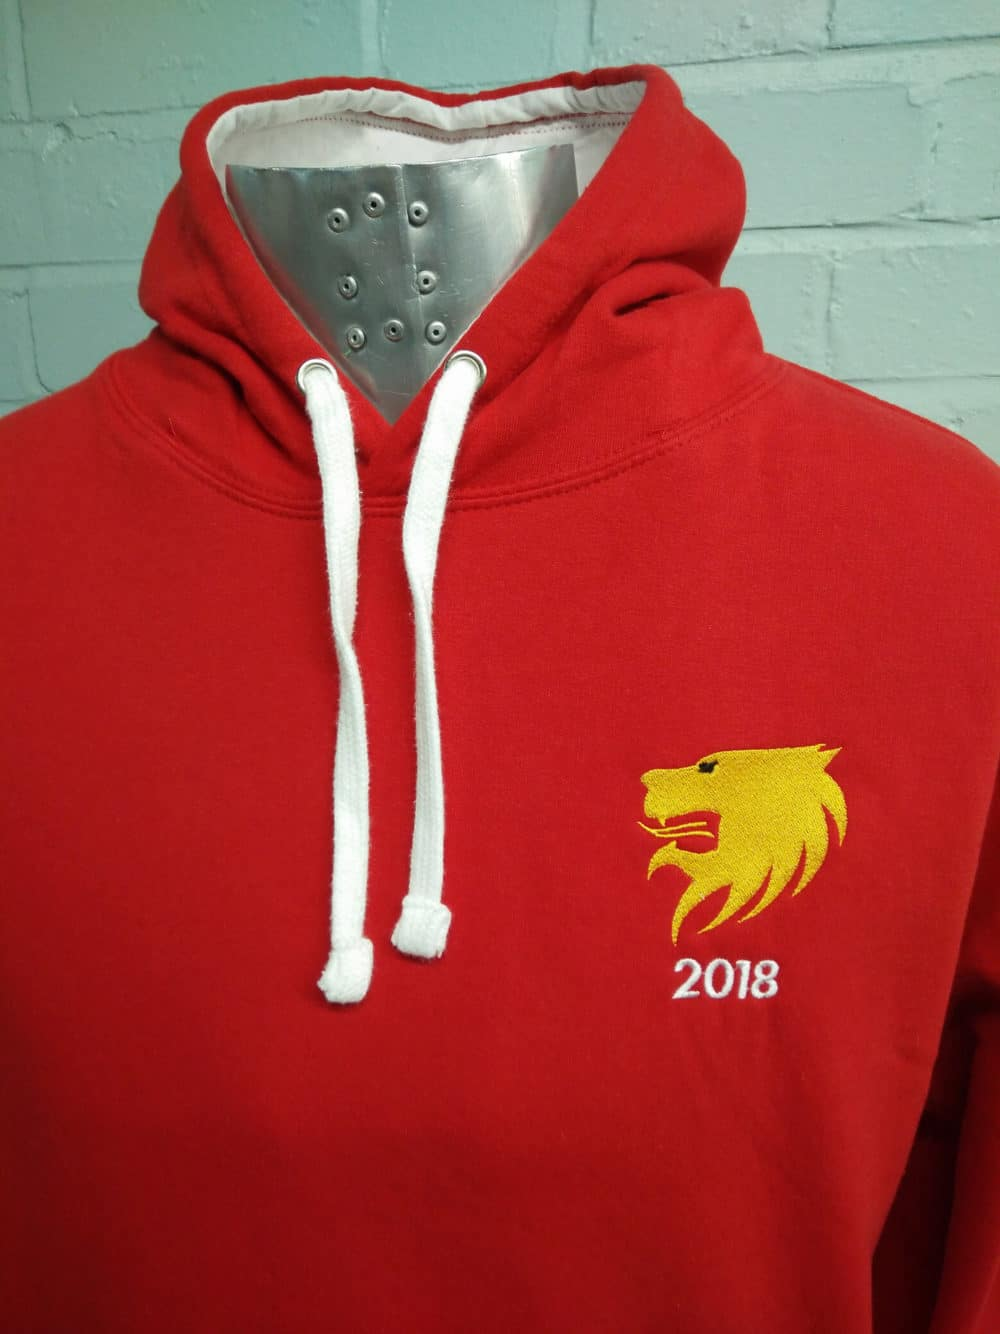 Printed Duo Red & White Leavers Hoodies Class of 2018 Yellow Logo 1